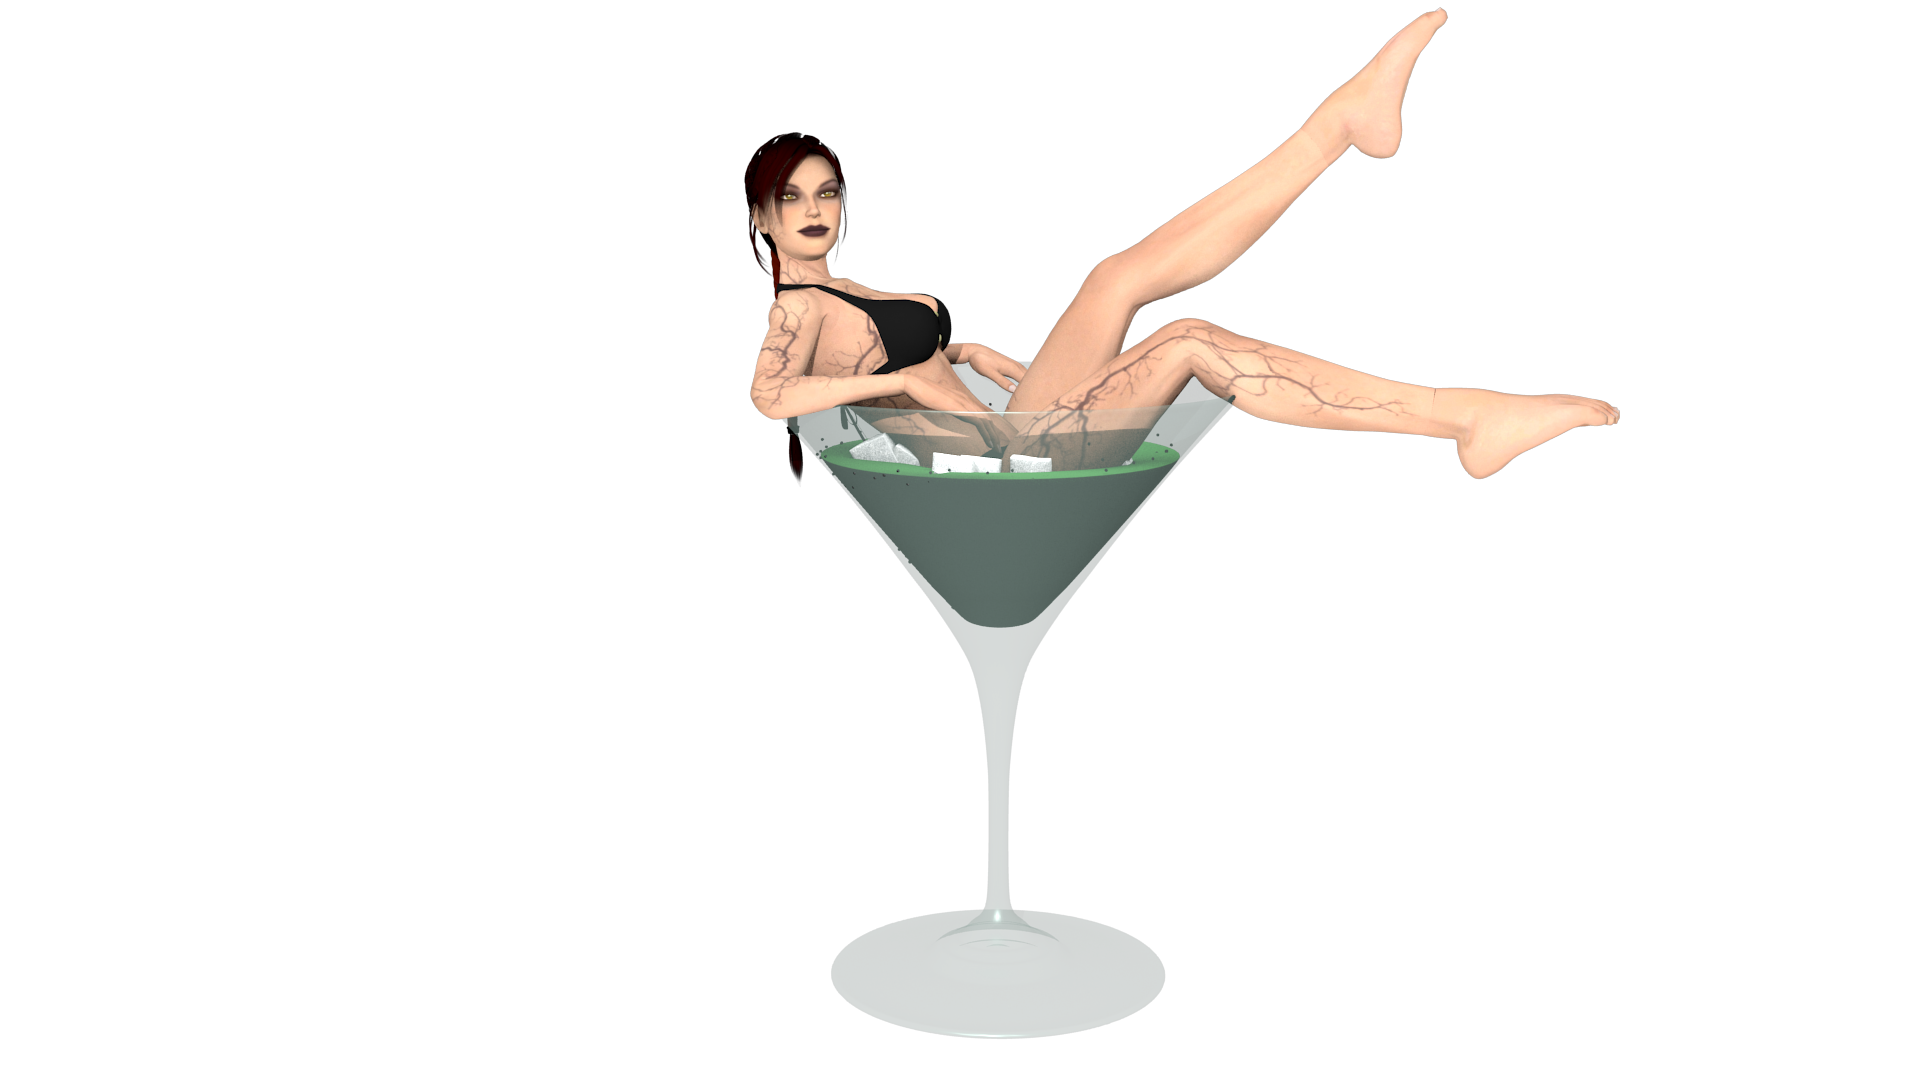 Pin Up Doppel by AlexCroft25 Pin Up Doppel by AlexCroft25 - Pin HD PNG